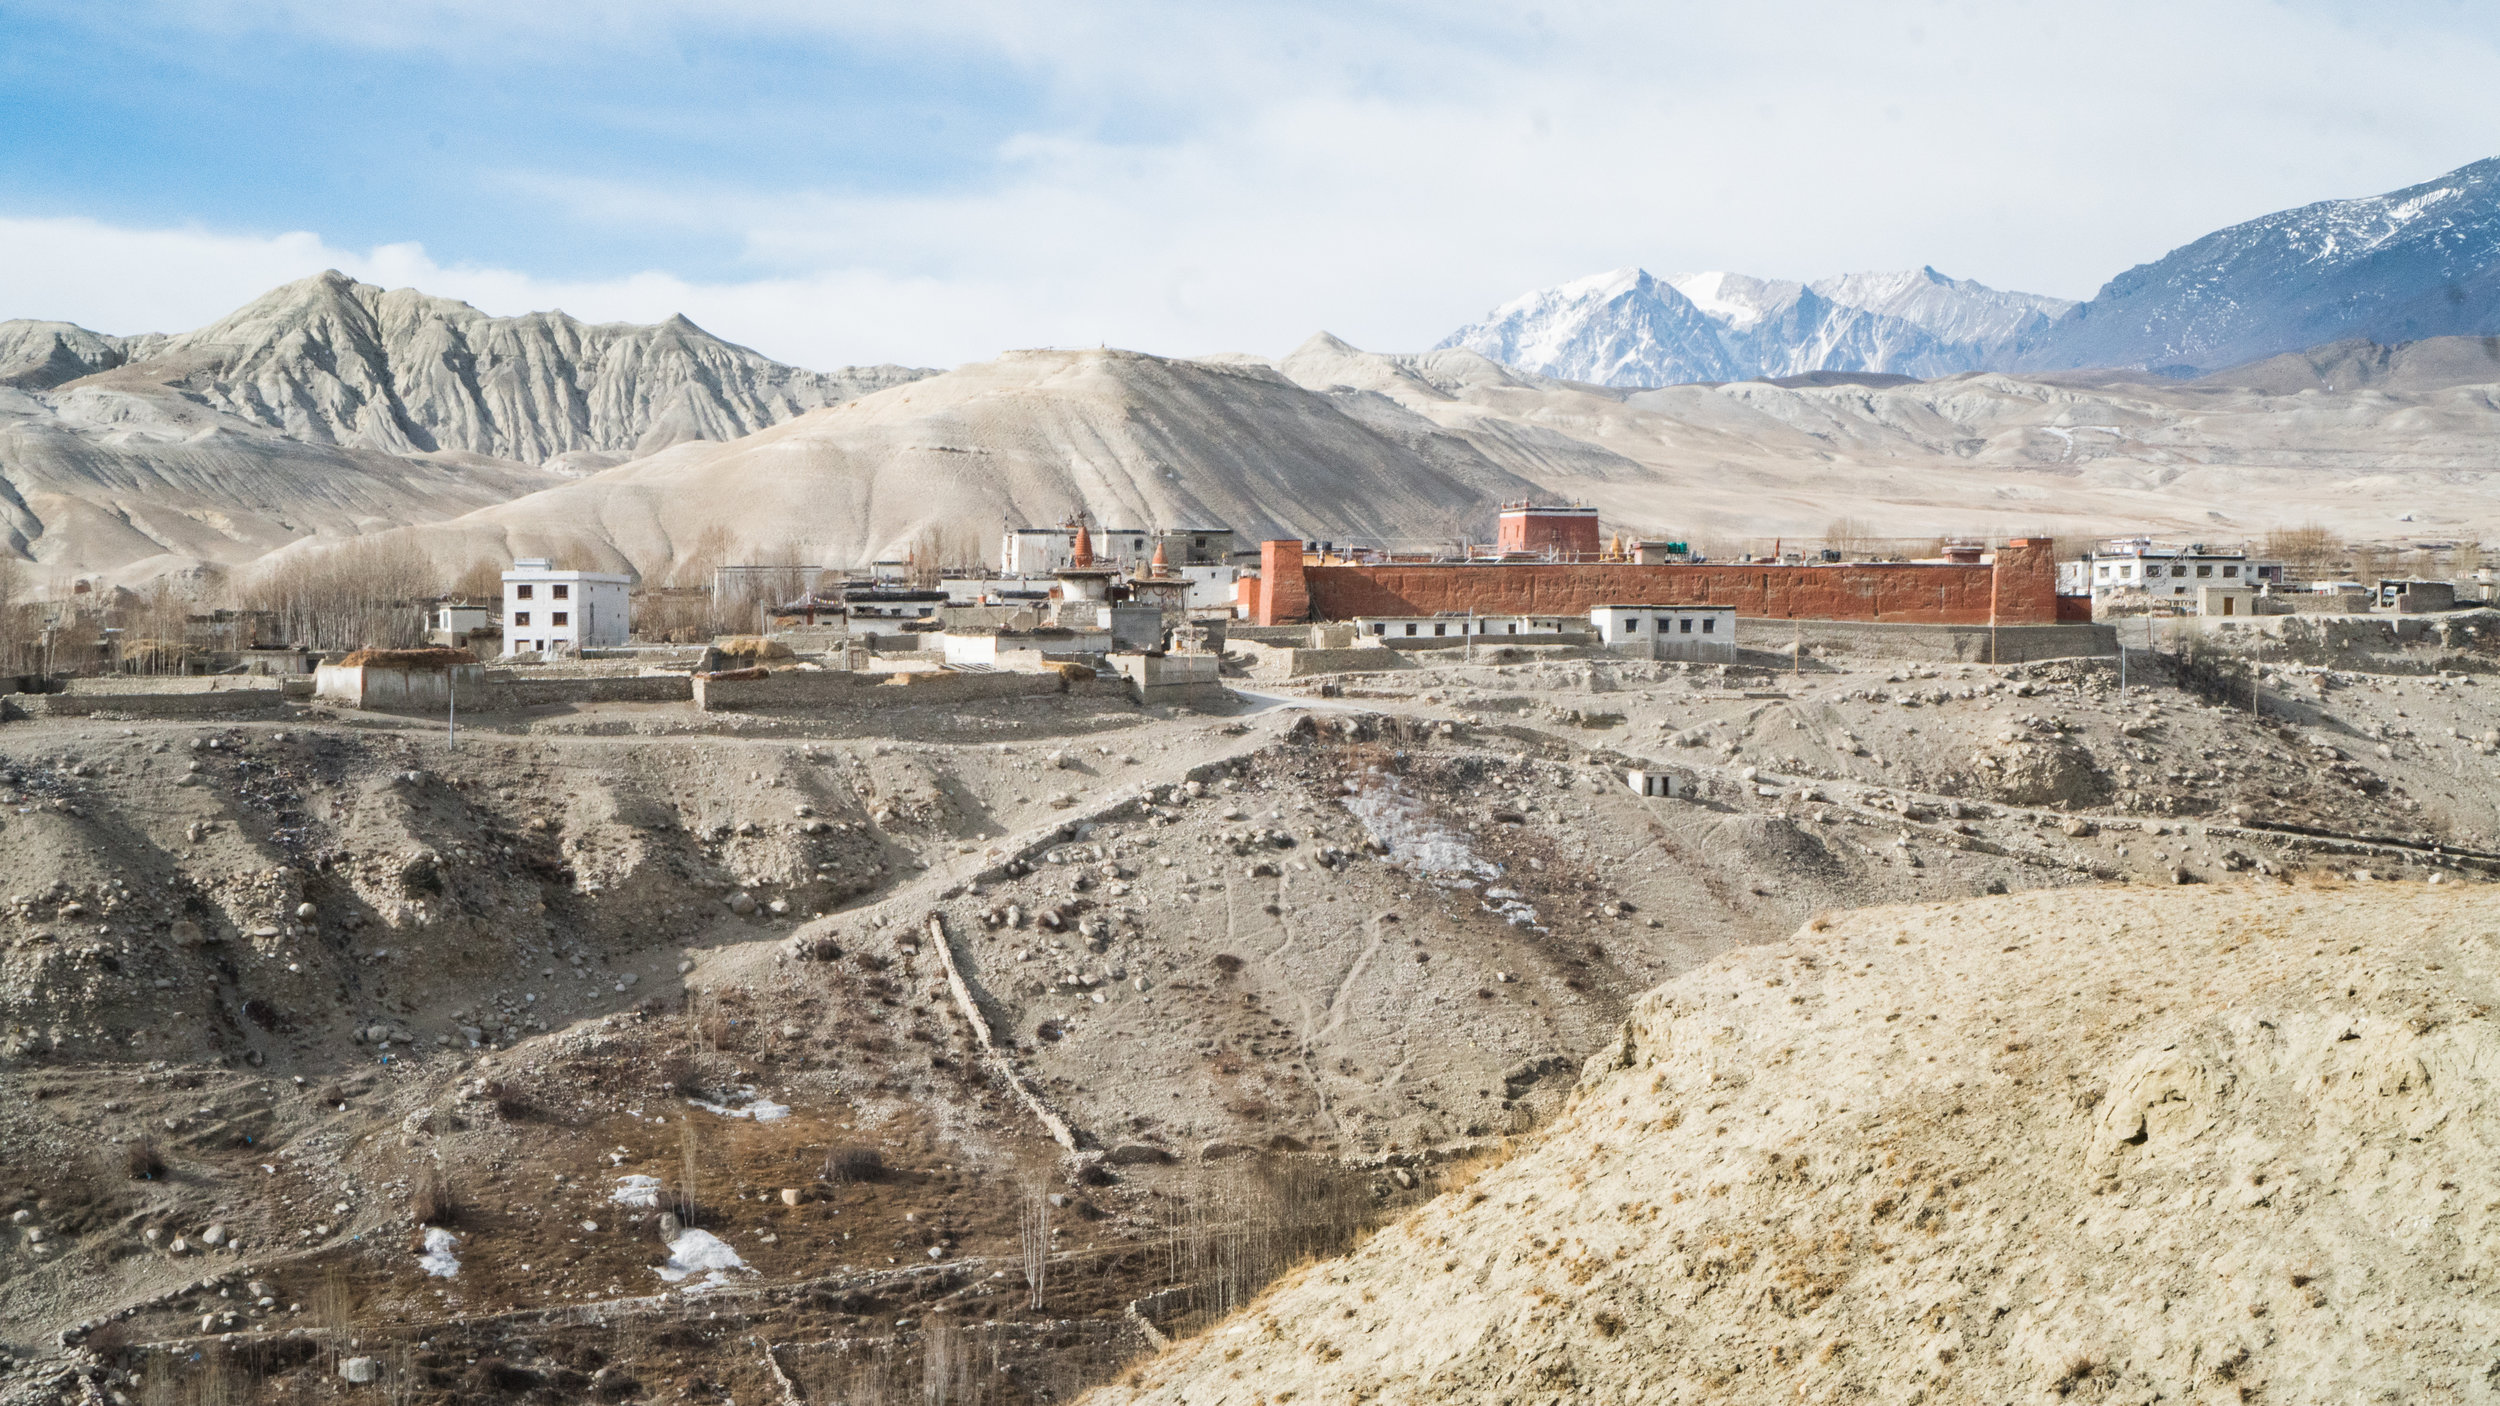 5 Mustang Lo Manthang Landscape Photography